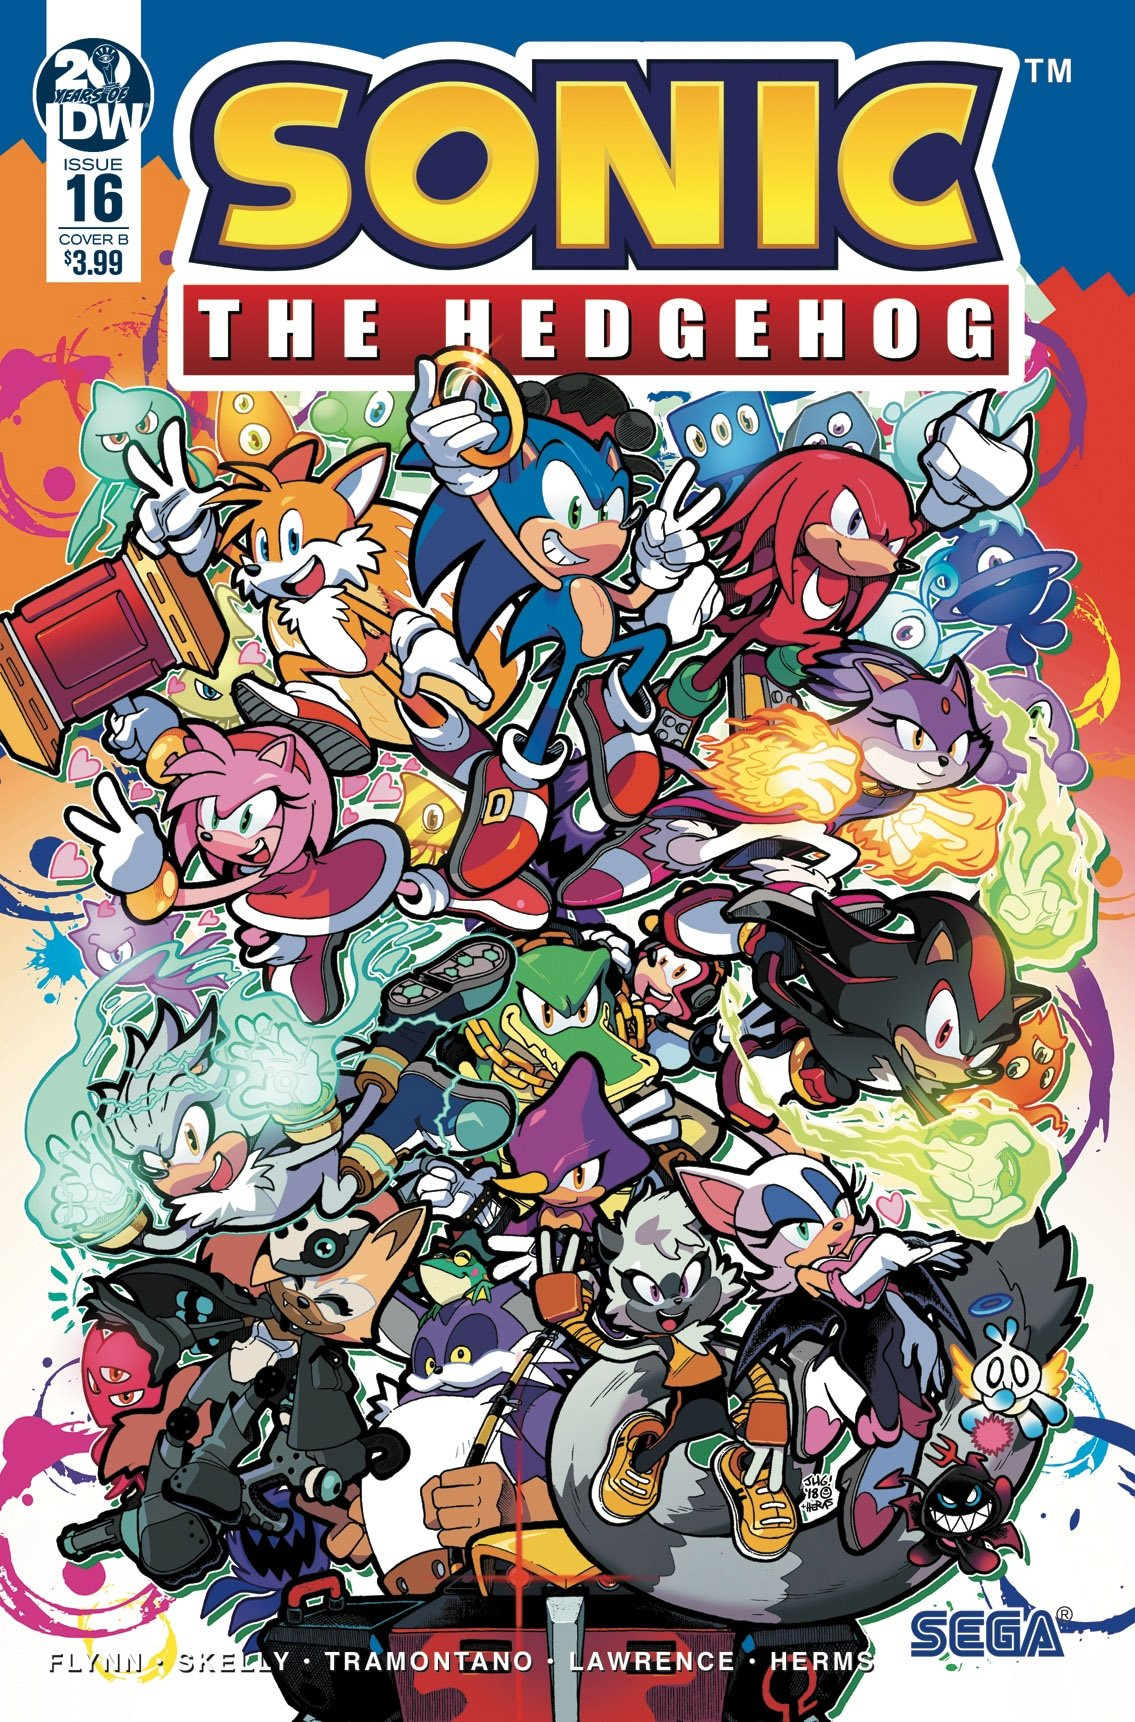 Sonic the Hedgehog 016 (April 2019) (cover b)